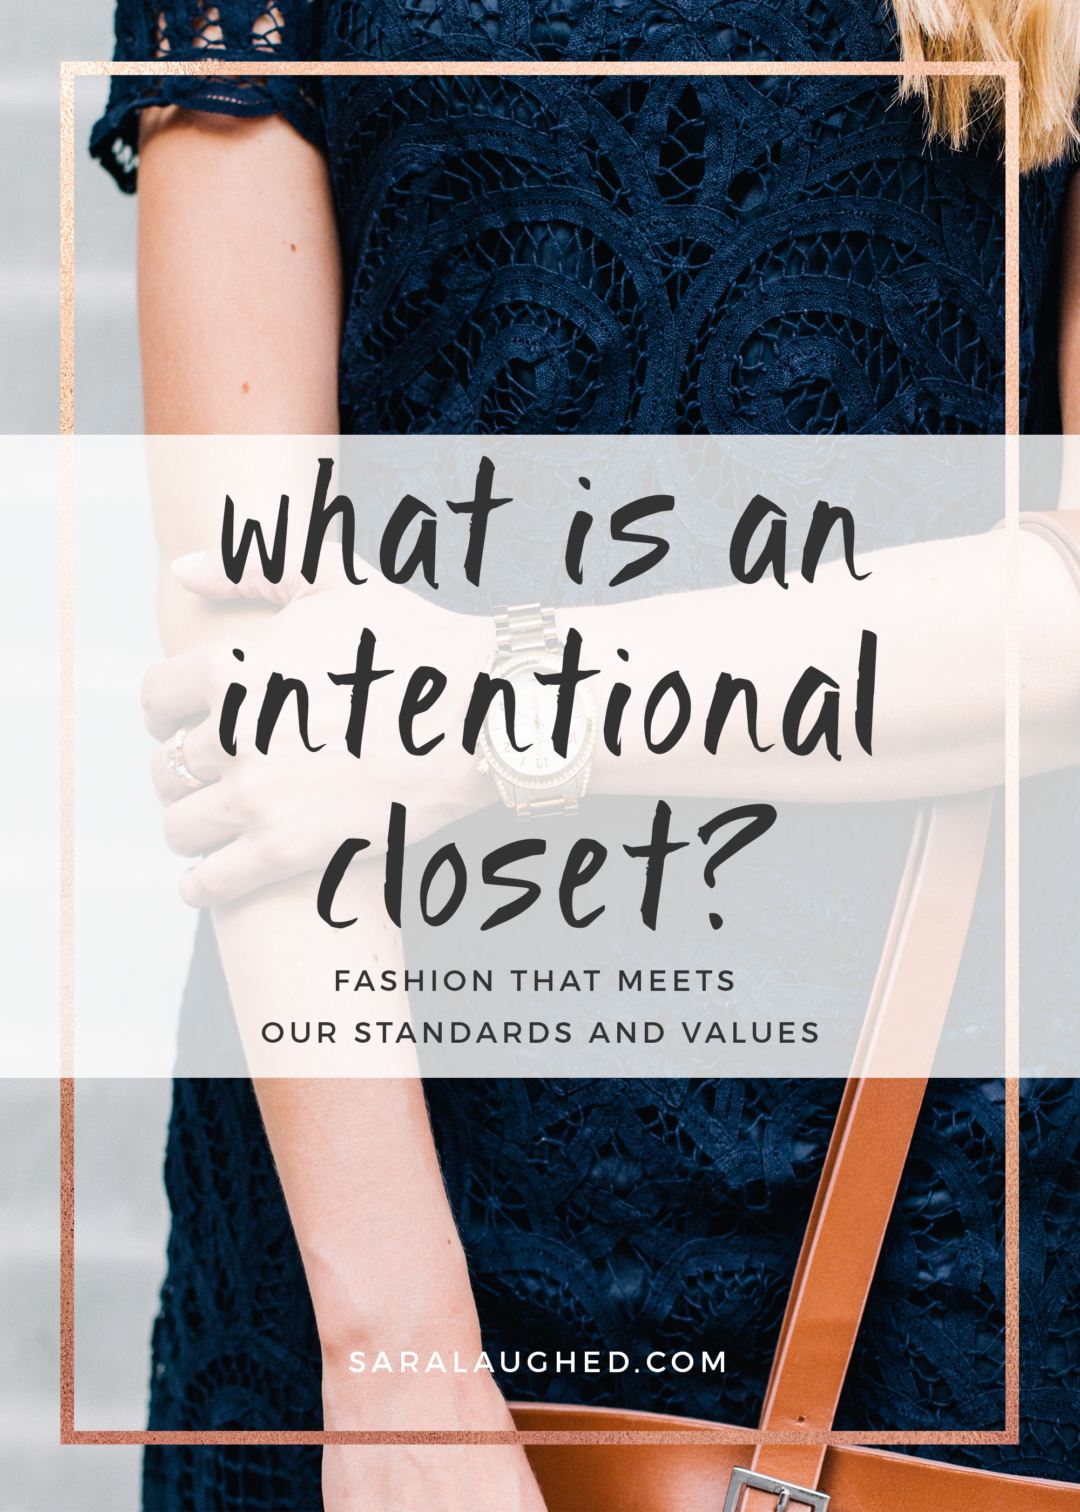 What Is An Intentional Closet?